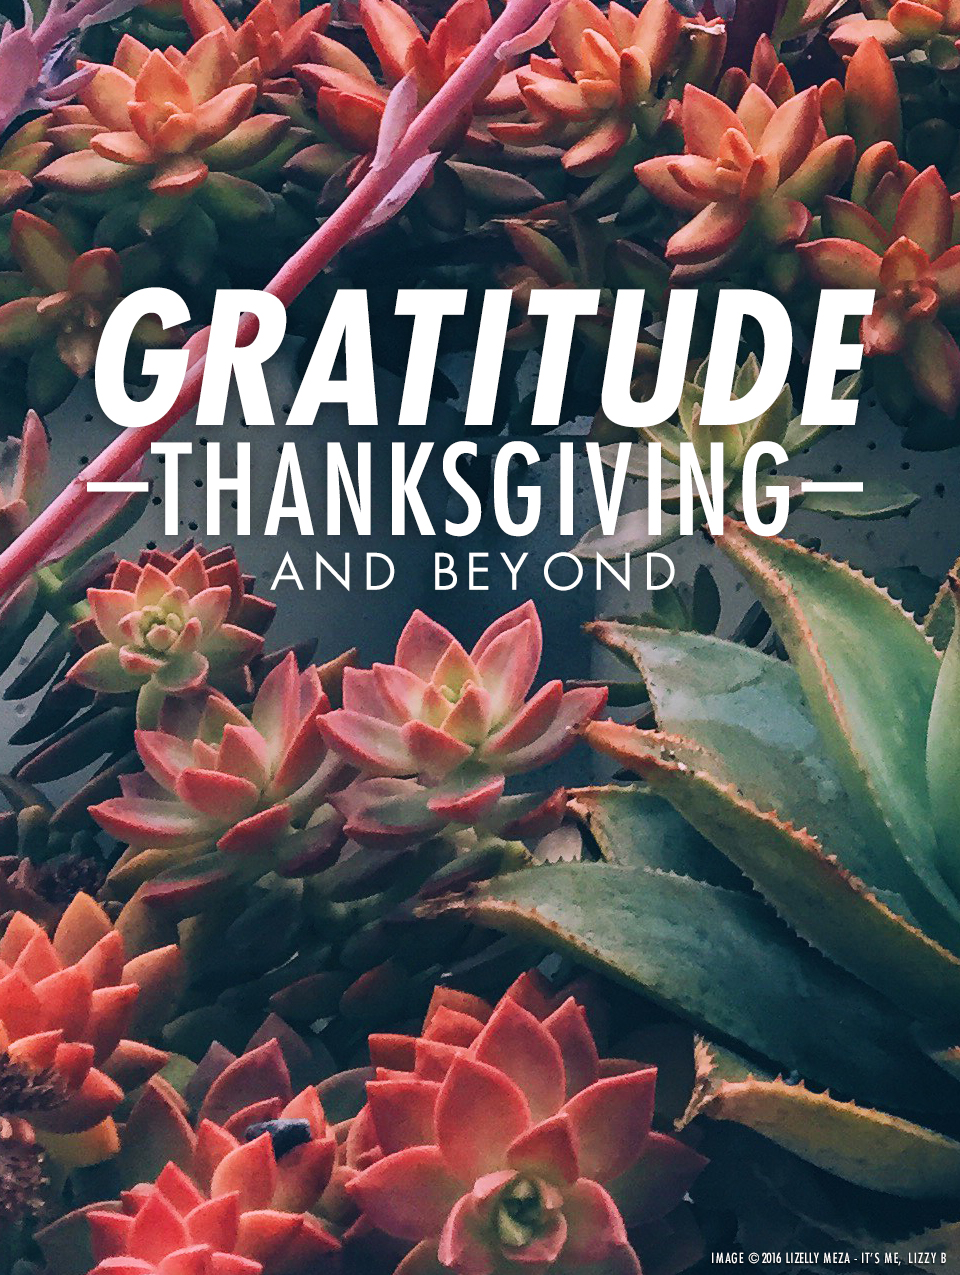 On Gratitude—Thanksgiving and Beyond // It's Me, Lizzy B - Musings on Life, Business, & The Pursuit of Curiosity // Personal blog of Lizelly Meza from Lizzy B Loves